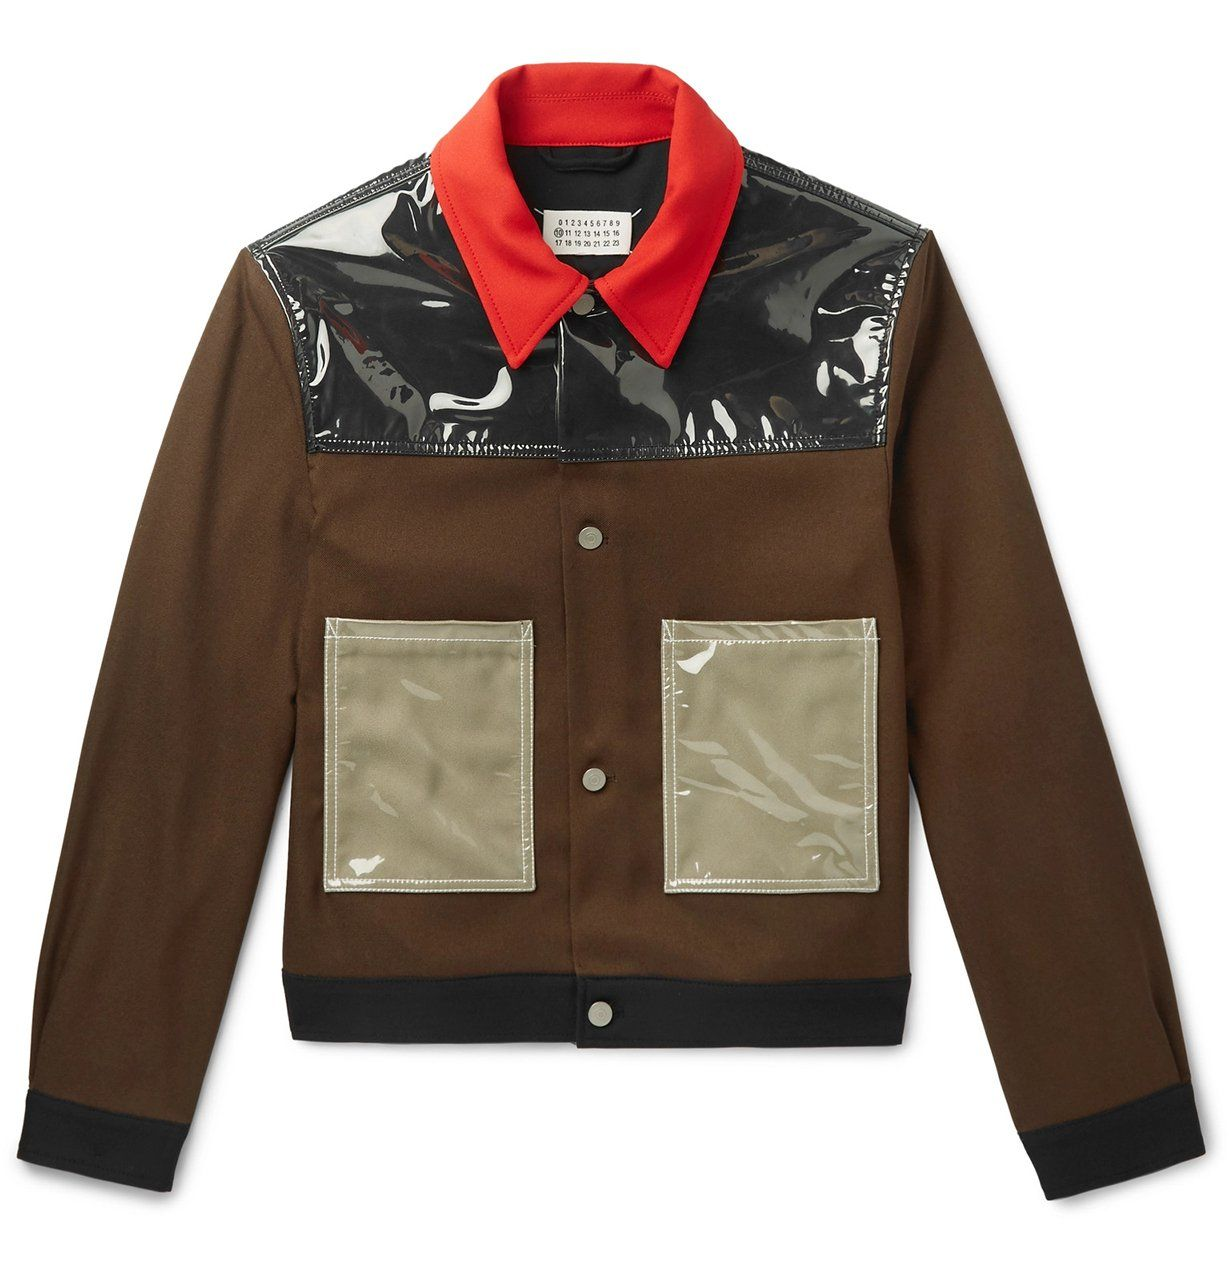 Mens PVC Trucker Jacket Movies Jackets for sale